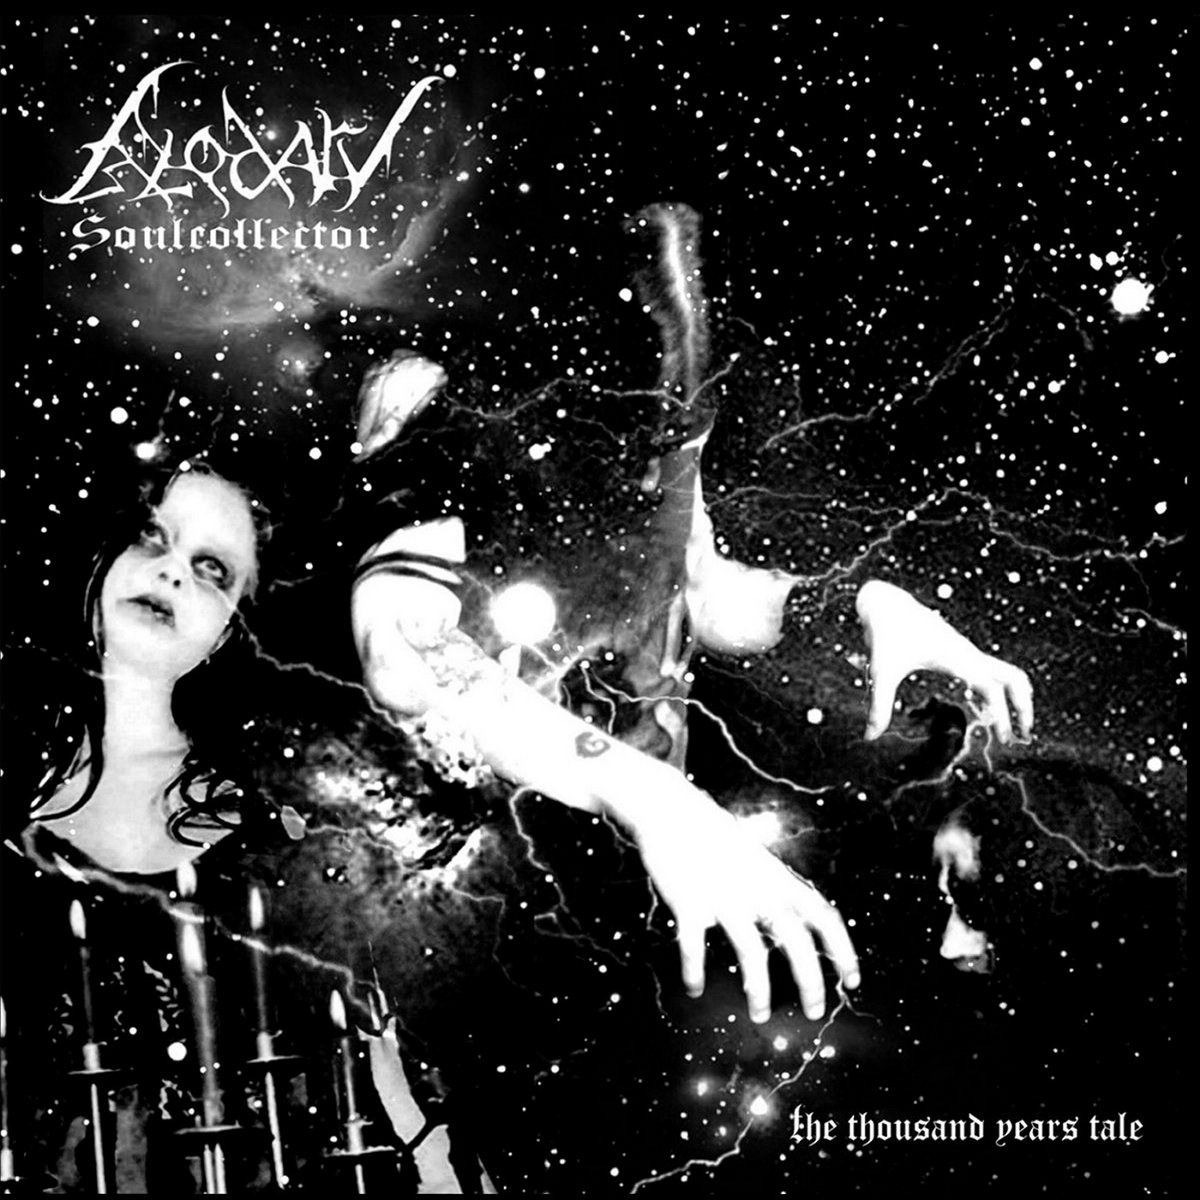 Review for Blodarv - Soulcollector (The Thousand Years Tale)